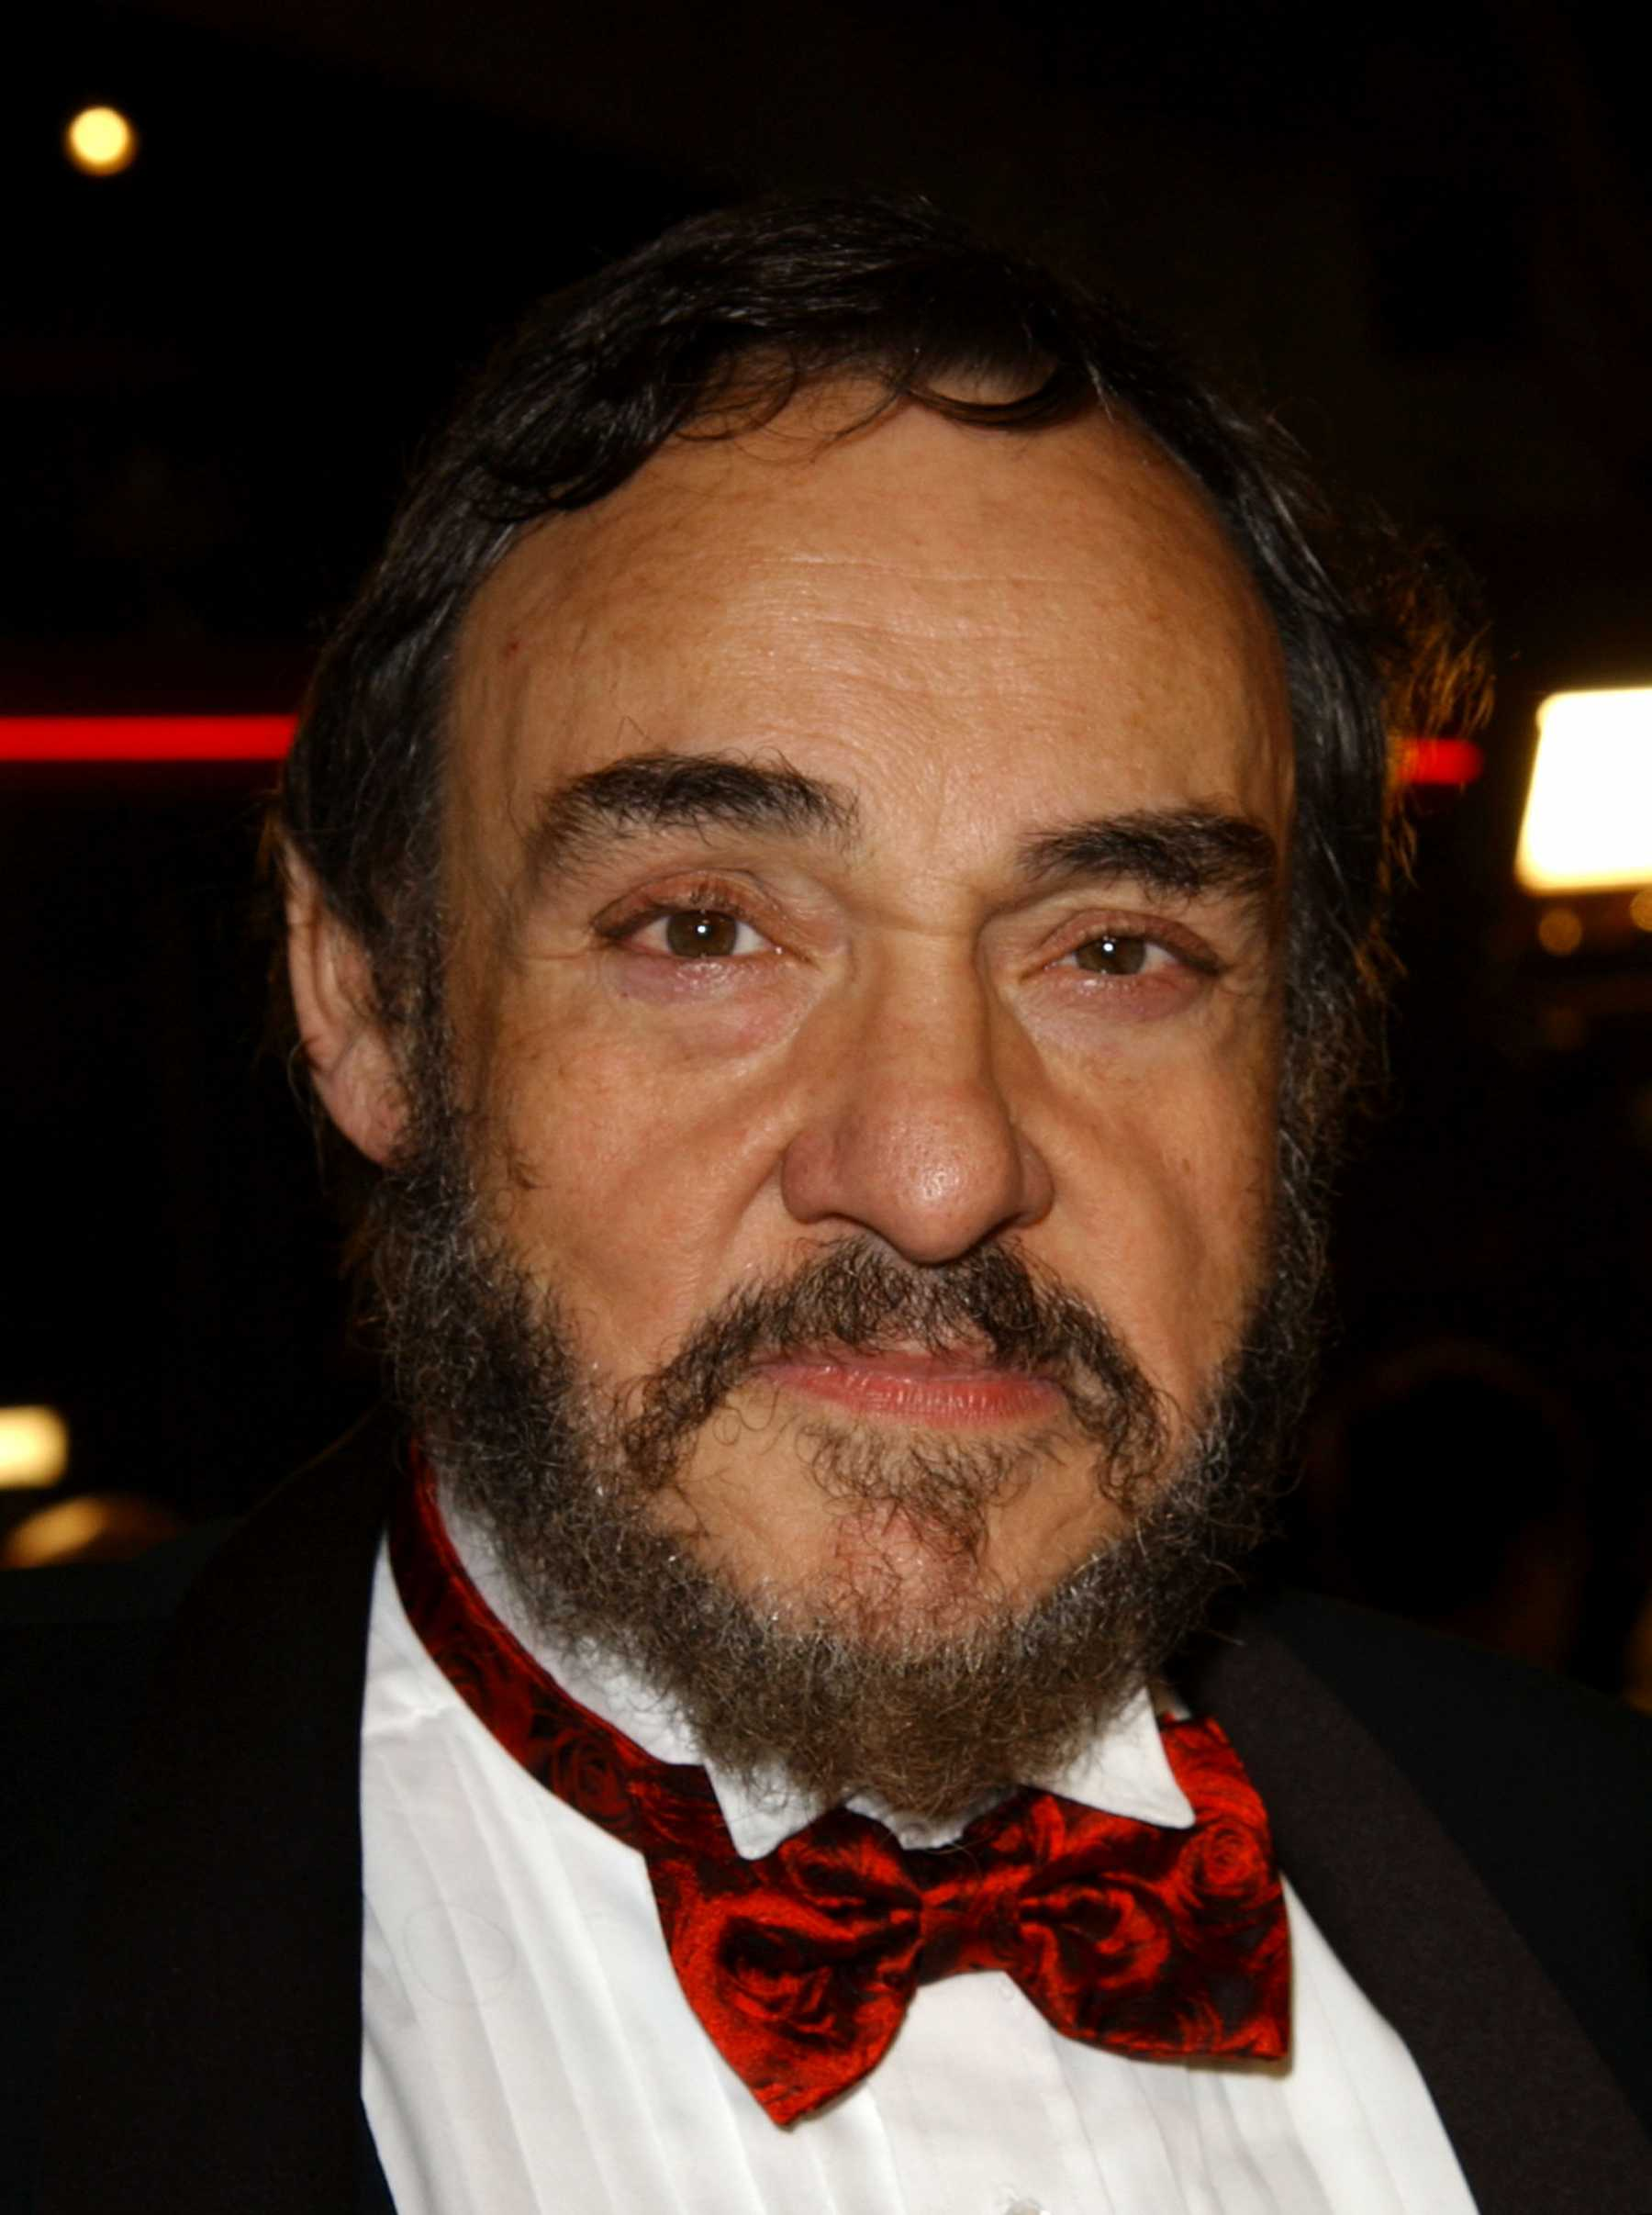 John-Rhys Davies: Being Politically Correct Will Destroy Western Civilization | John Rhys-Davies